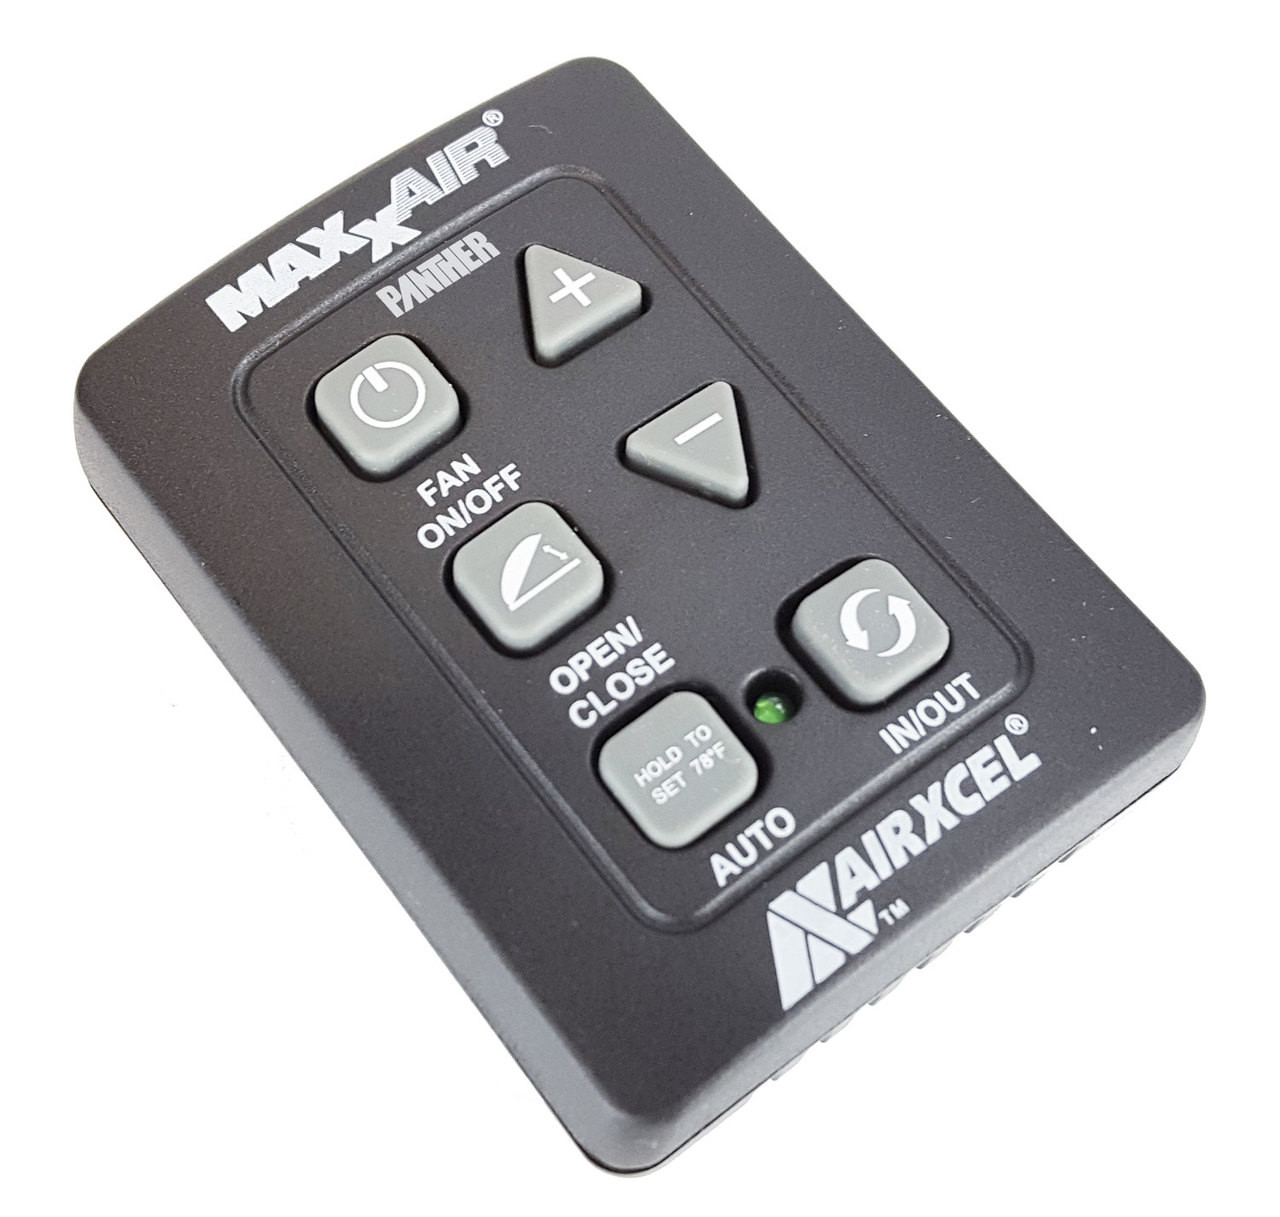 small resolution of  maxxair 00a03650kit 6 button wall control for maxxfan plus and deluxe black